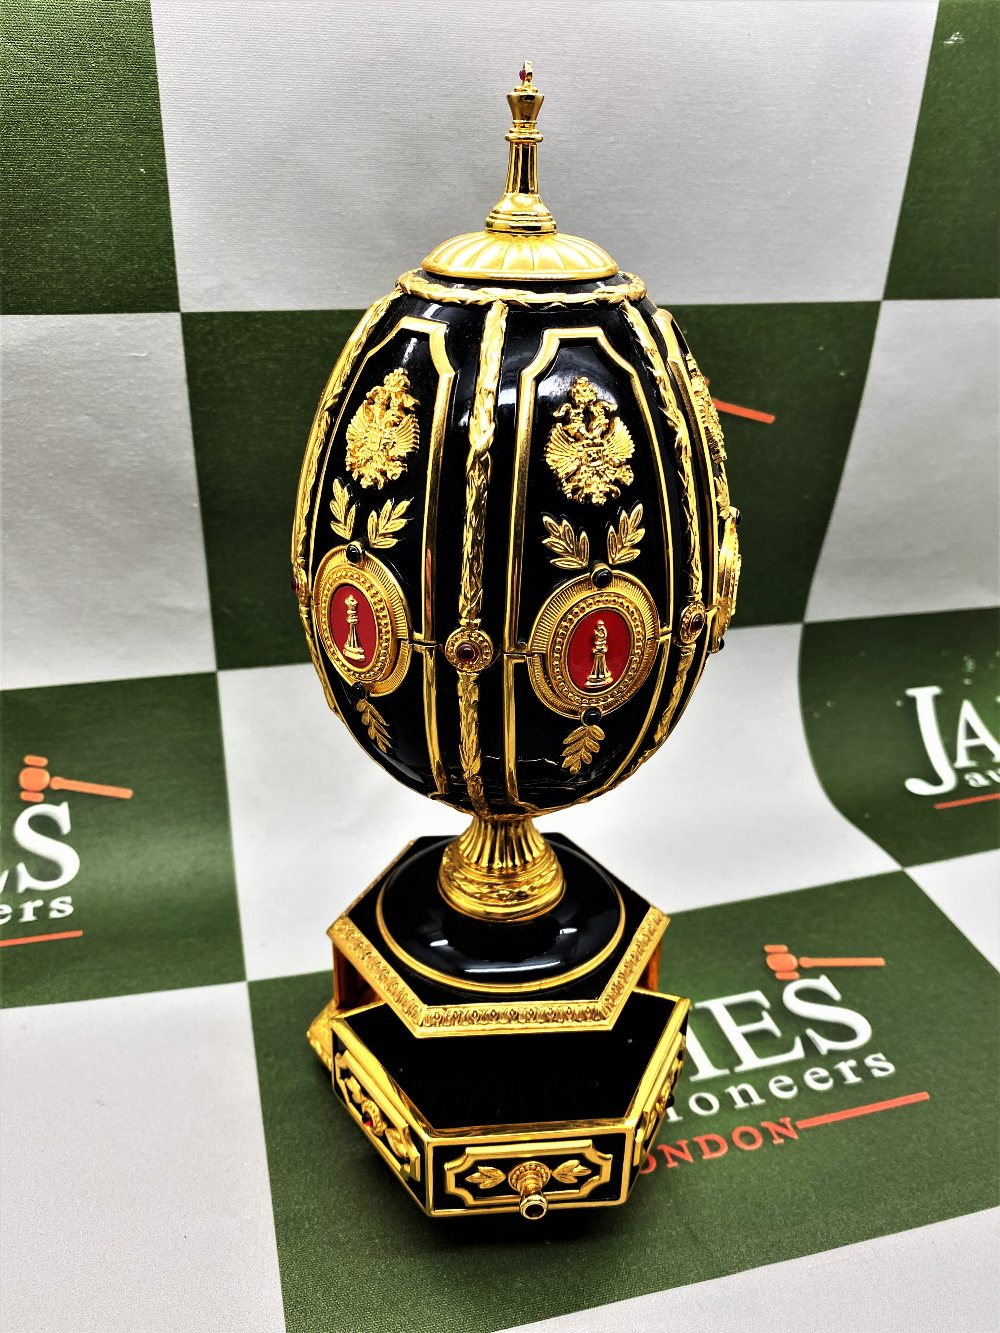 Franklin Mint House of Faberge 24 Carat Gold Imperial Jeweled Egg Chess Set - Image 11 of 11